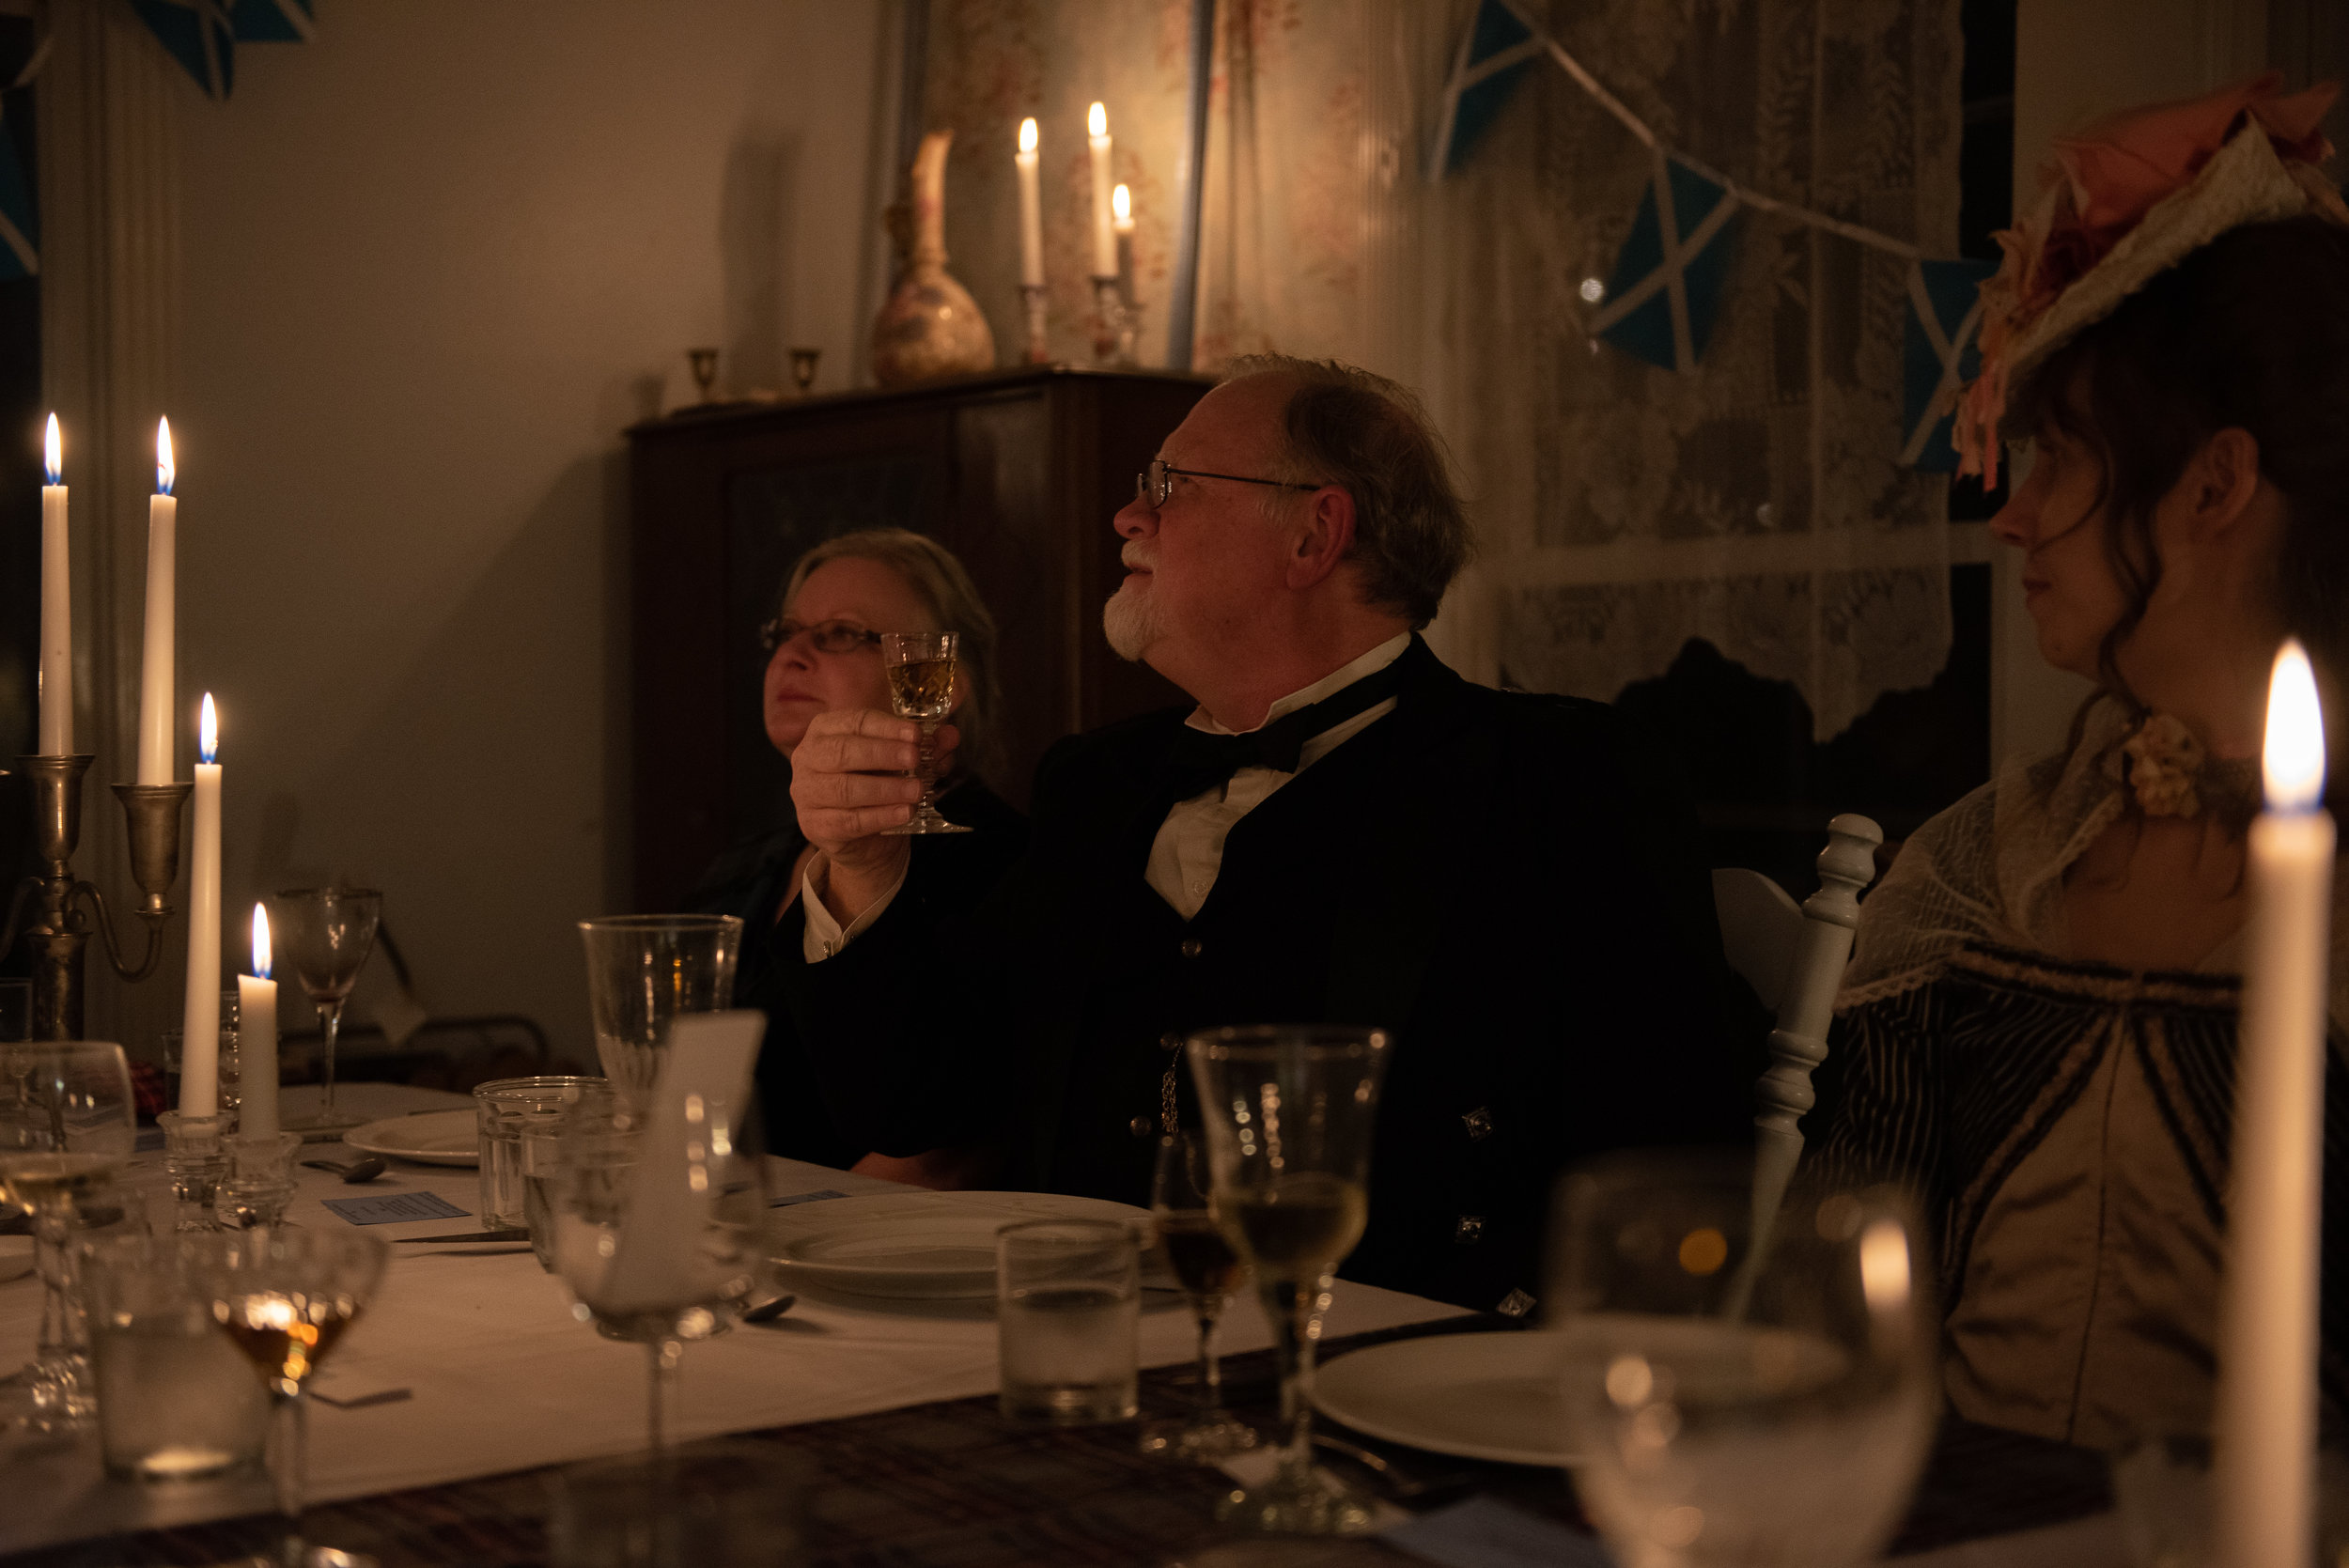 A Toast to Haggis? - Yes you toast your haggis…as you should because it is divine!